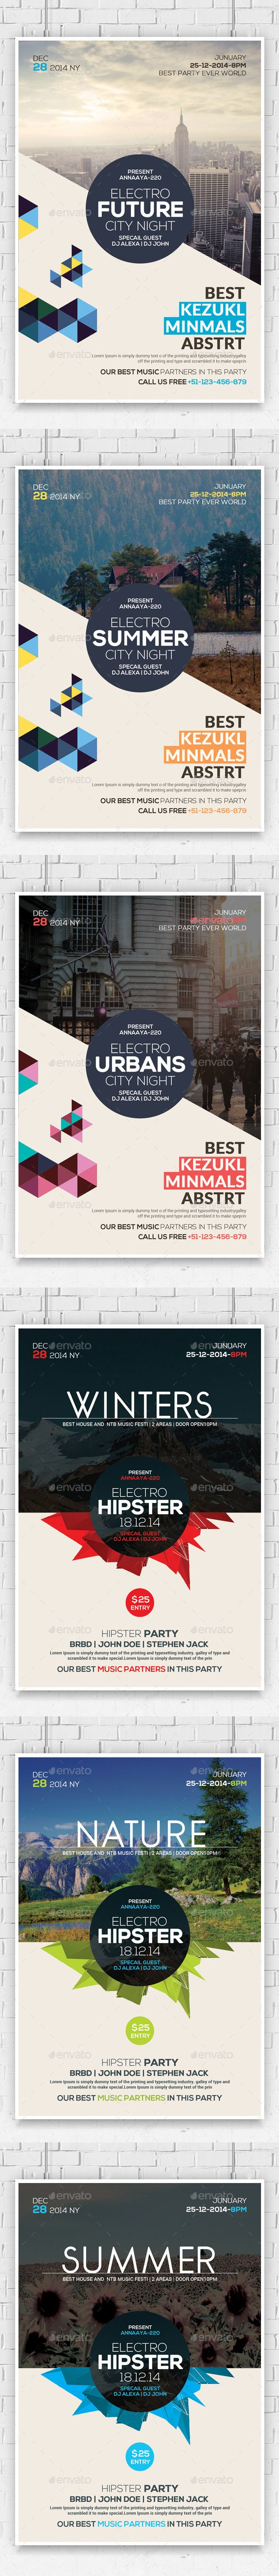 Hipster Party Flyers Bundle (CS, 4x6, abstract, album, clean, club, club flyer, design, electro, flyer, future, futuristic, geometric, geometric flyer, geometry, house, house flyer, minimal, minimal flyer, minimal party, minimalistic, modern, modern flyer, party flyer, poster, pure, style, stylish, techno, triangle, white, white flyer)